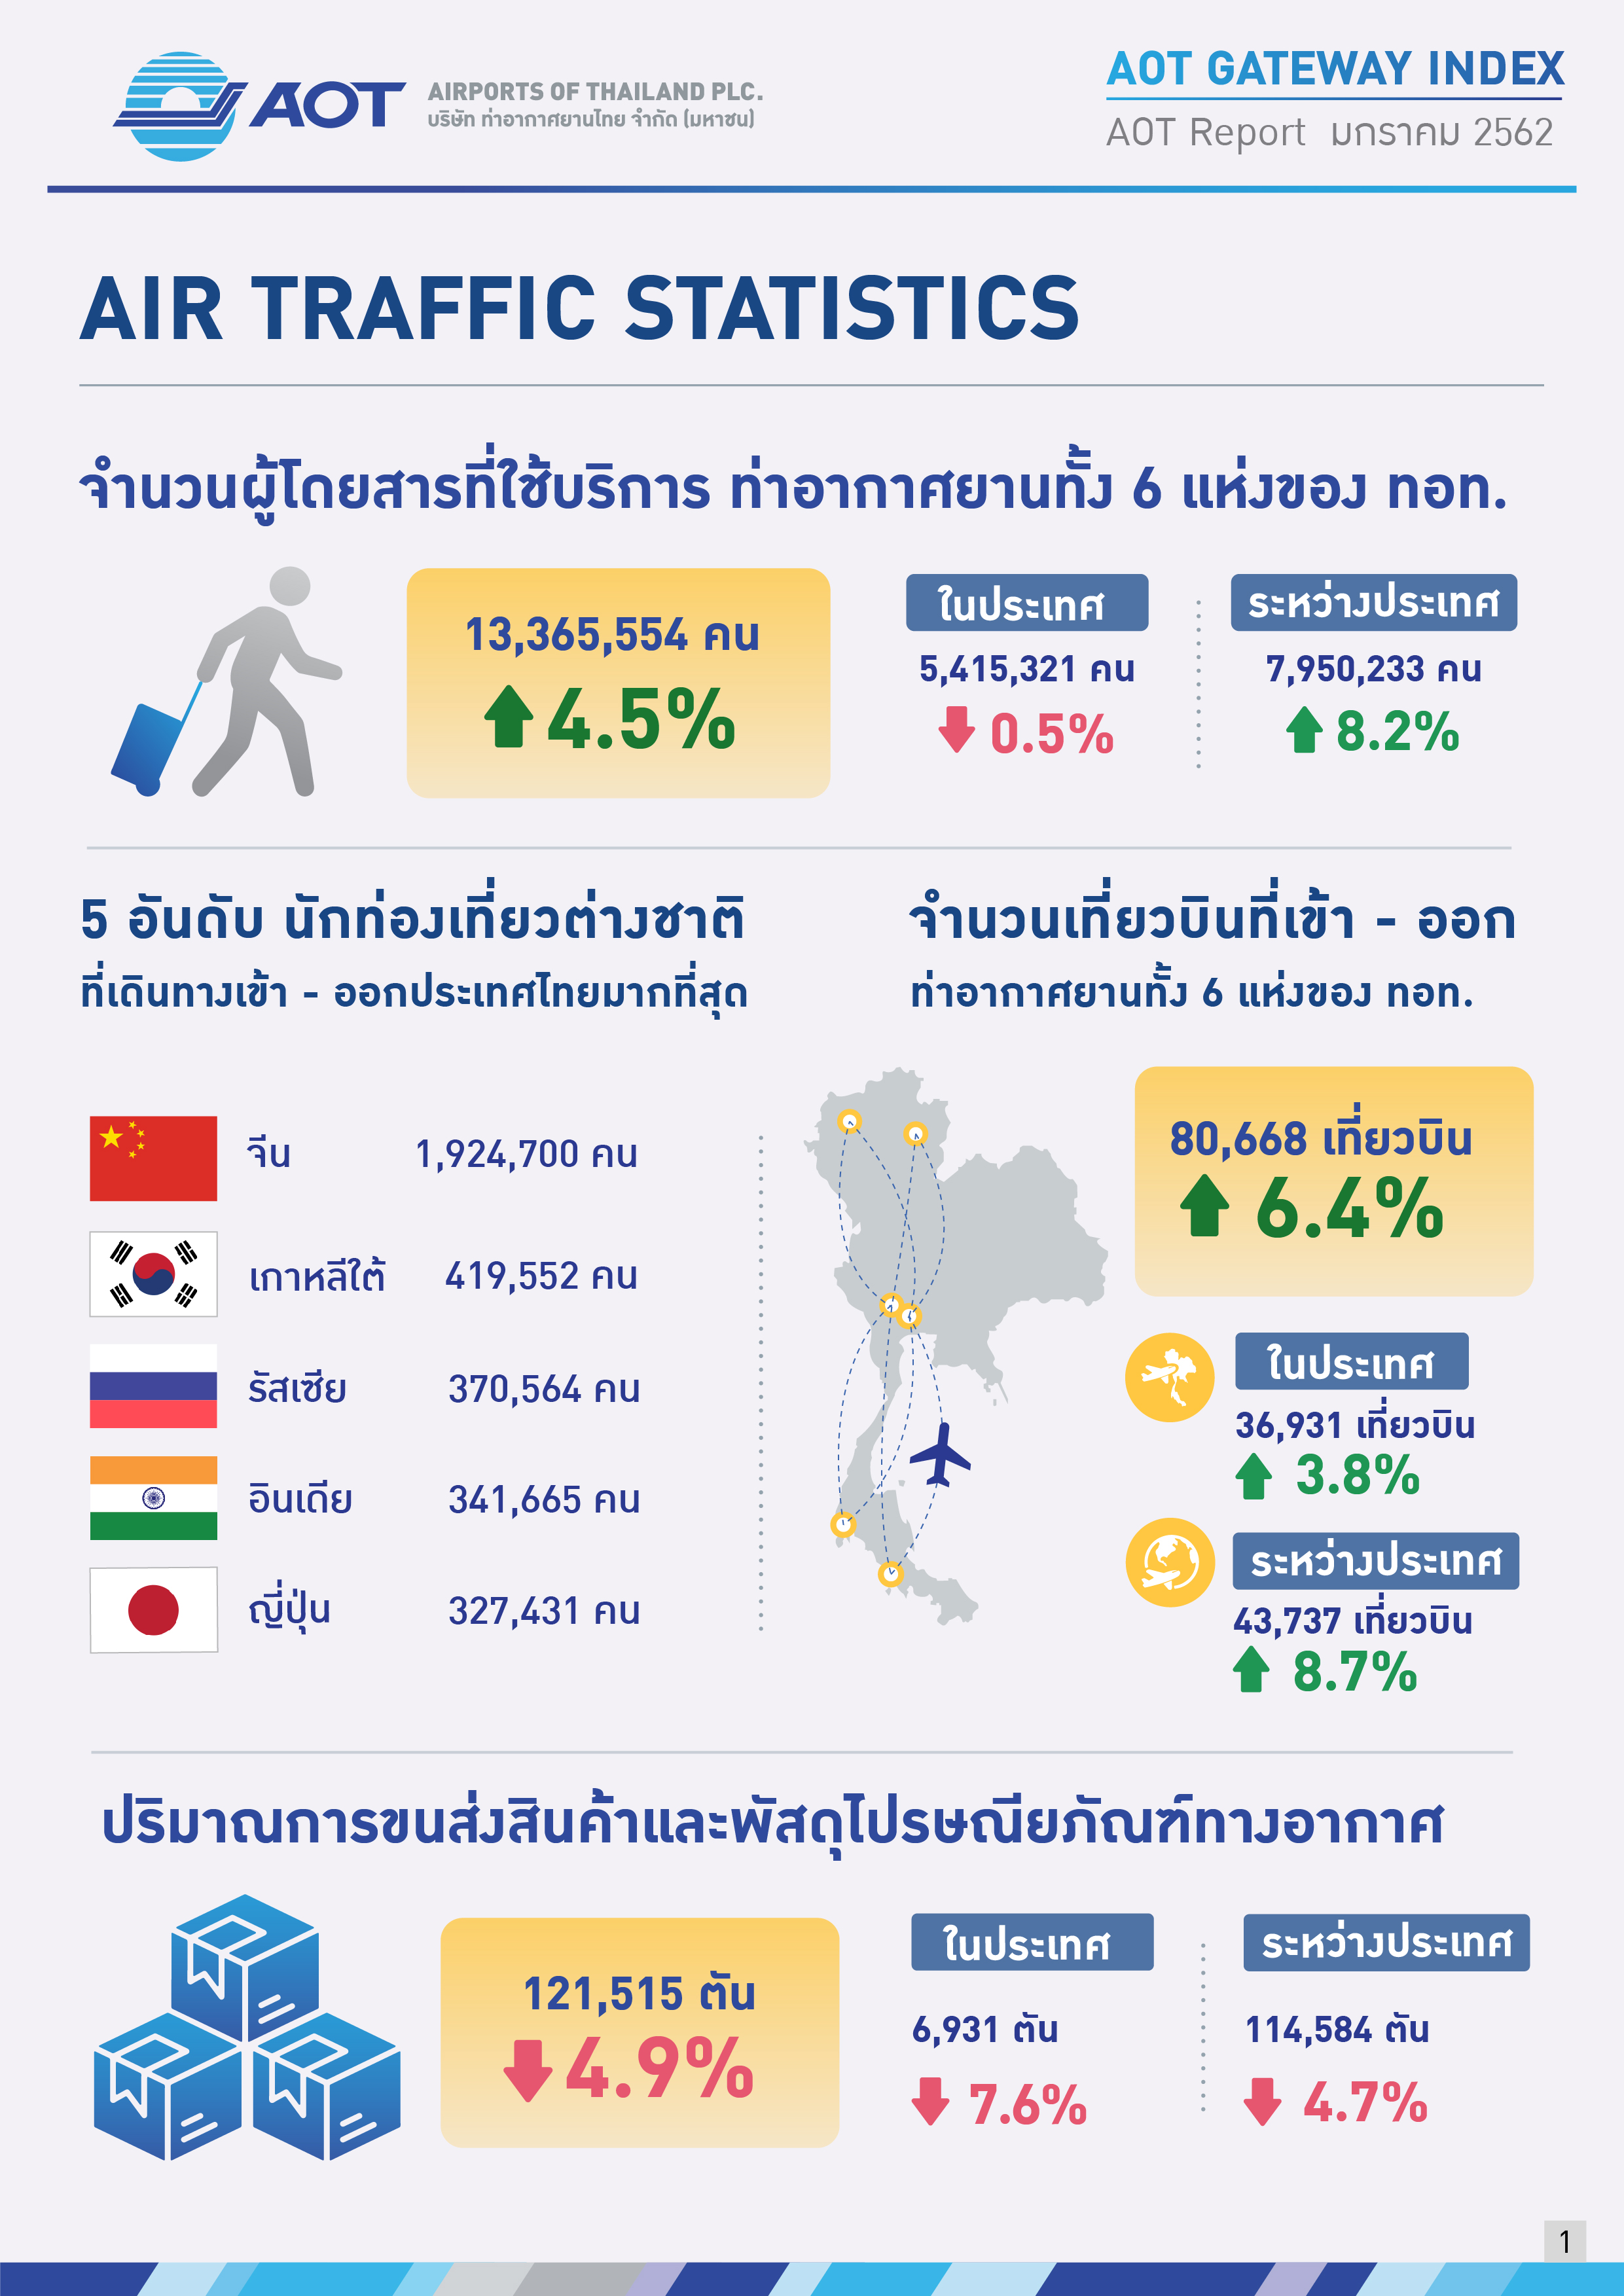 AOTcontent2019_Index_02_เศรษฐกิจโลก_V5_20190401_Page01